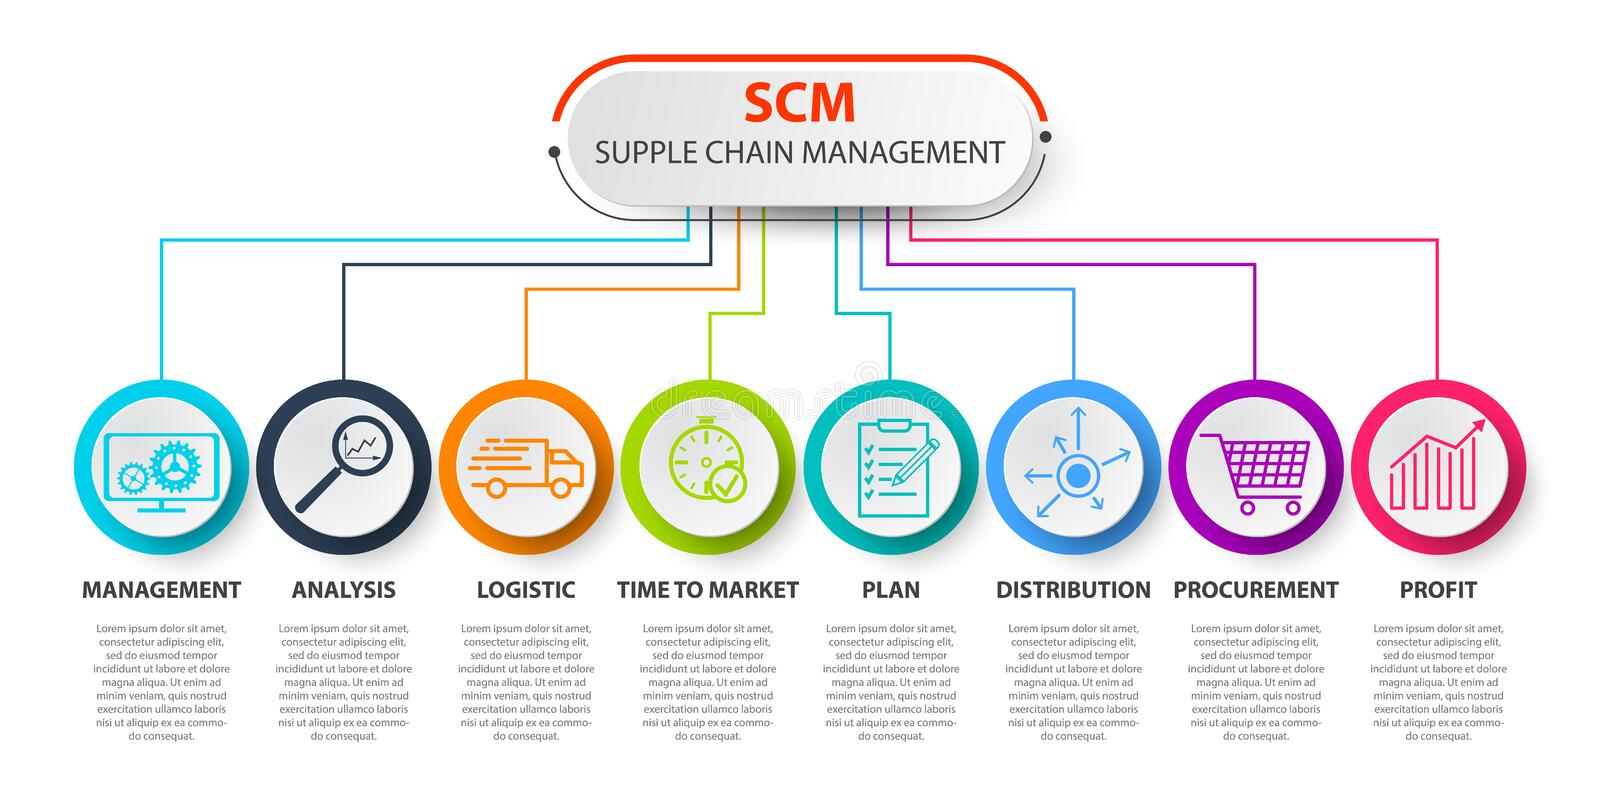 SCM - Concep del supply chain management Modello di concetto di SCM supply chain management di infographics illustrazione vettoriale